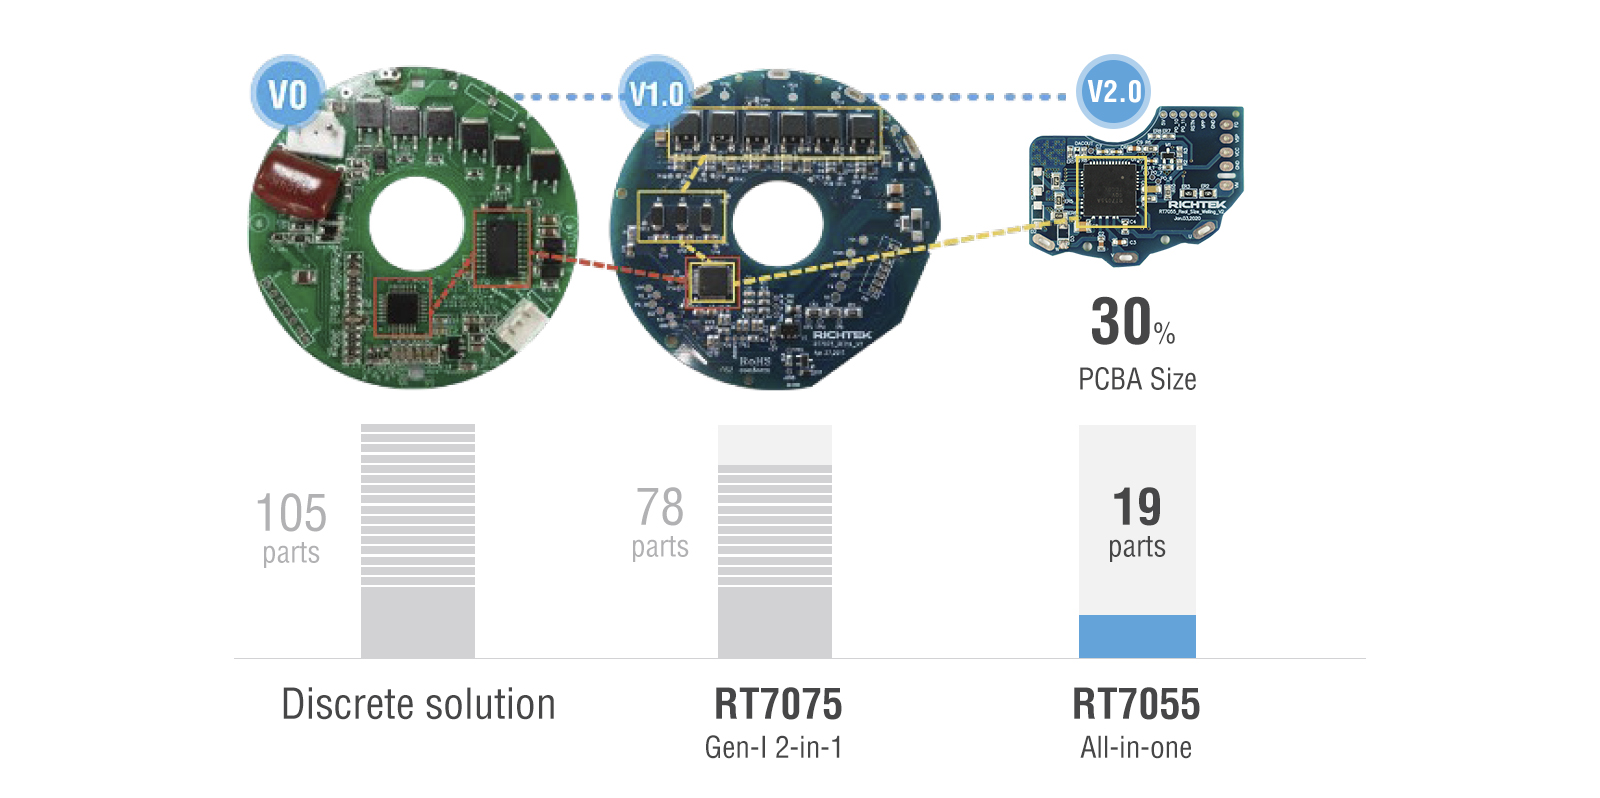 5 reasons to switch to Richtek's BLDC motor drivers